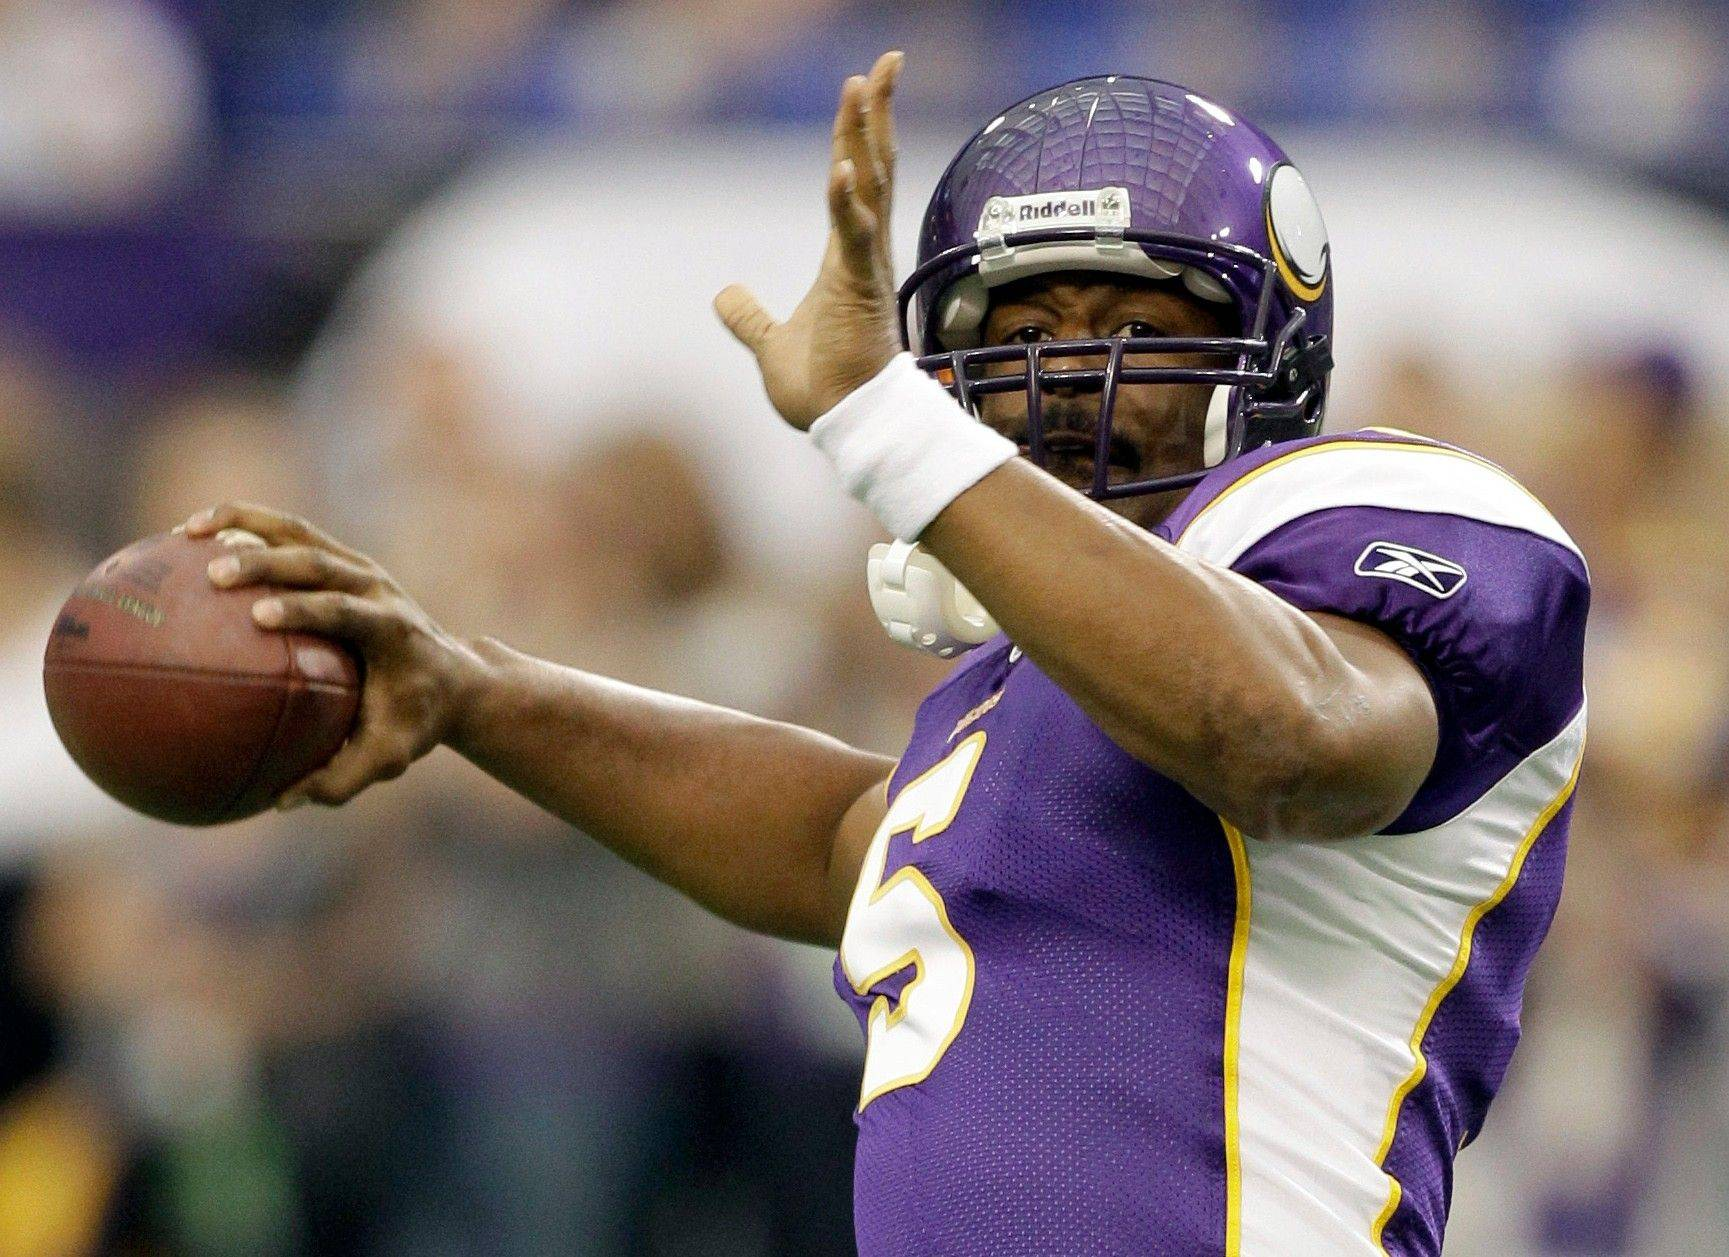 Minnesota Vikings quarterback Donovan McNabb will try to help new coach Leslie Frazier turn the Vikings into contenders.